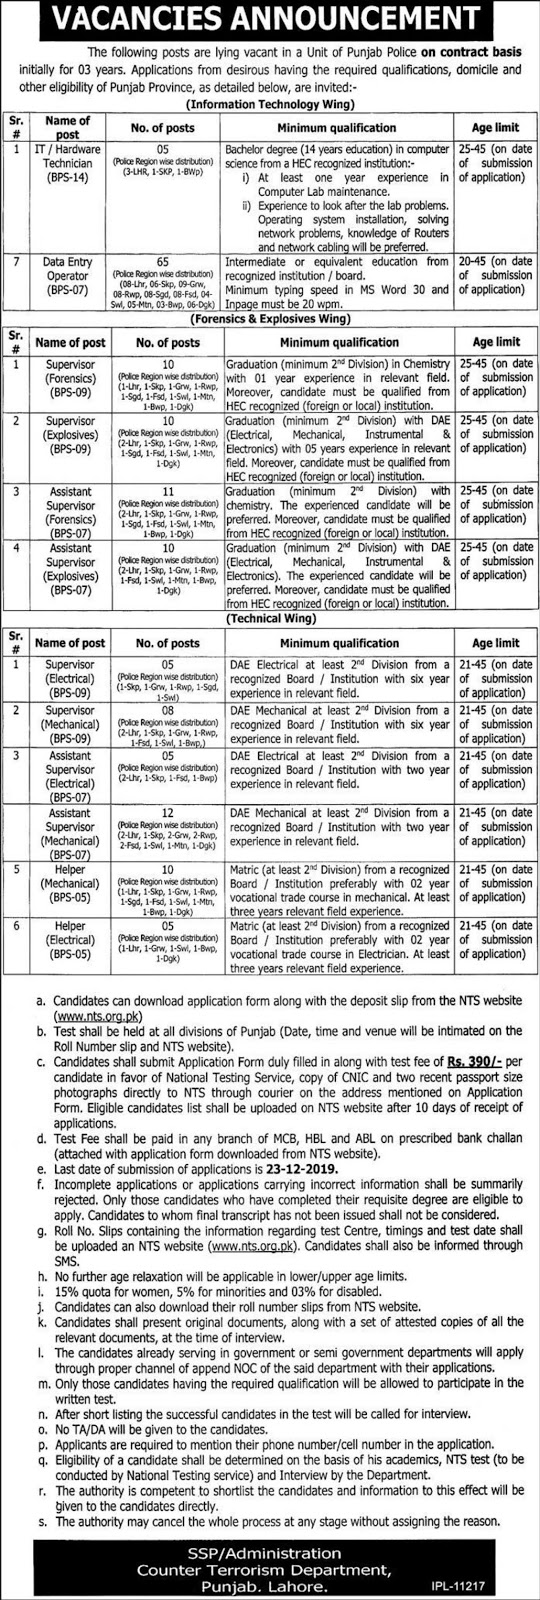 Latest Punjab Police Jobs 2019 Counter Terrorism Department CTD Application Form Download Here